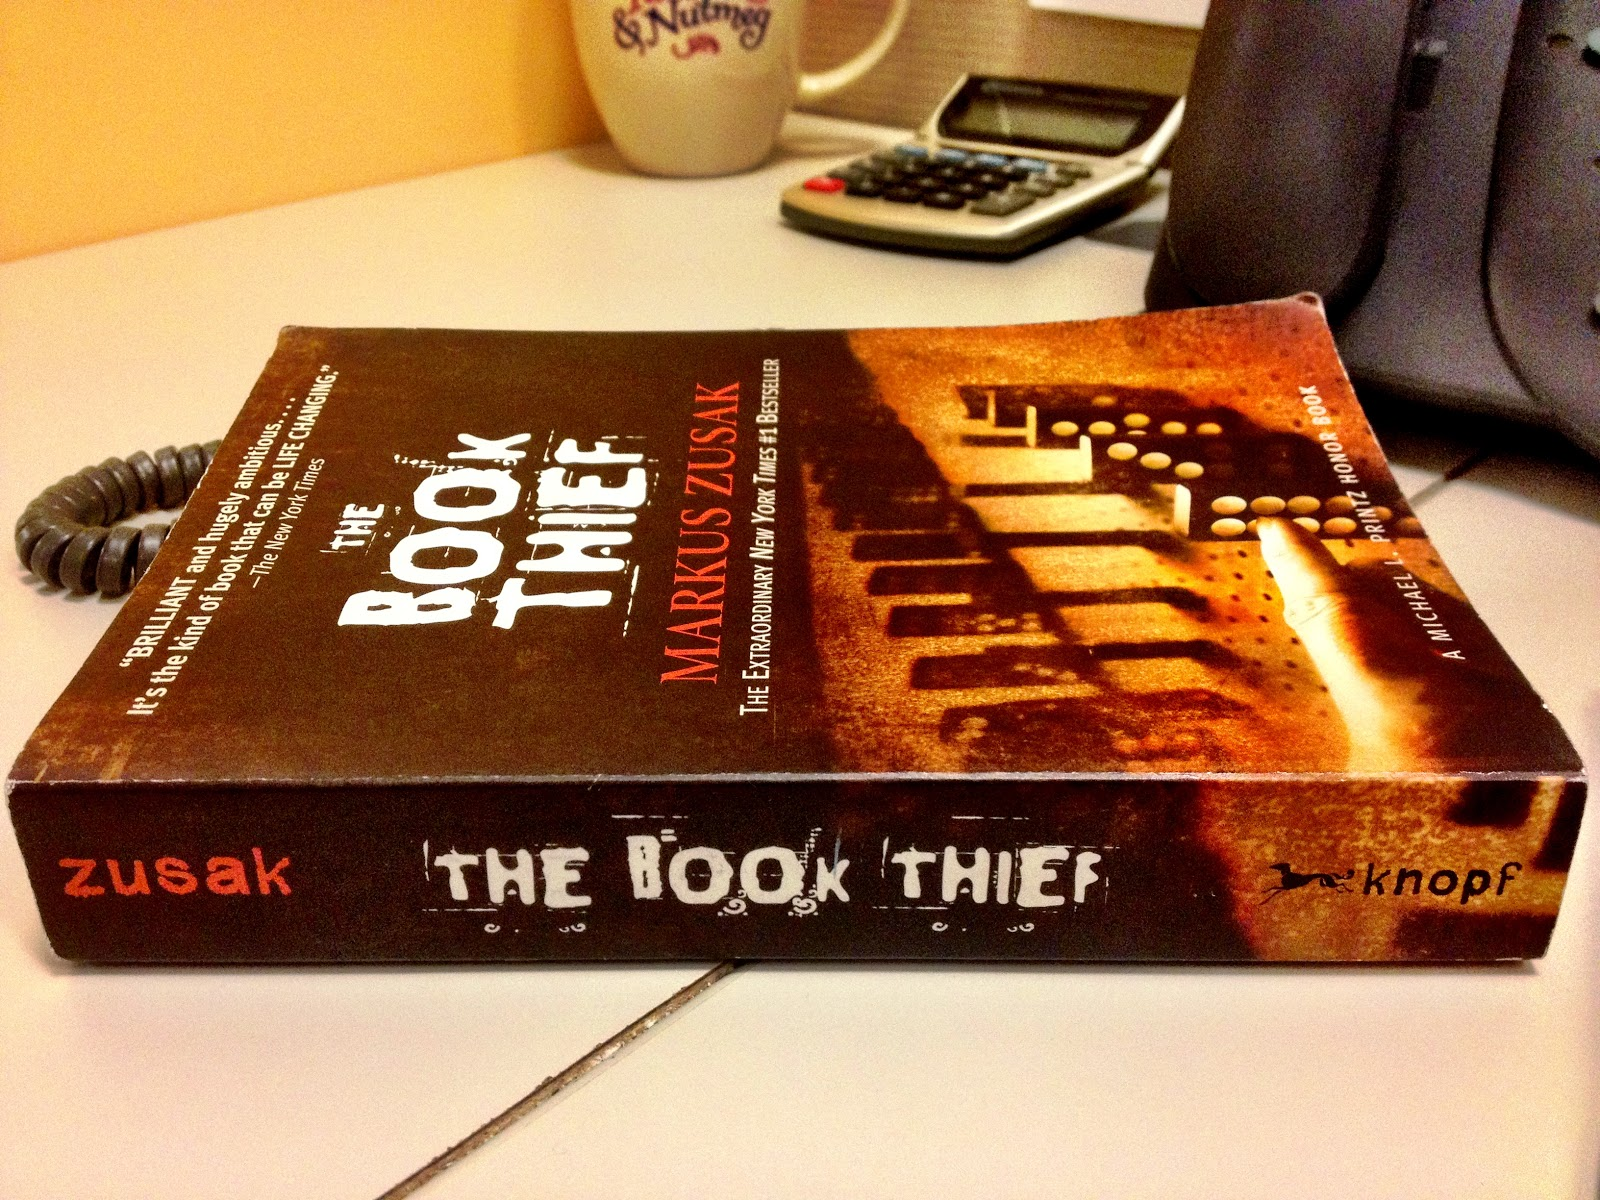 book chapter summary the book thief by markus zusak book summary the book thief by markus zusak book summary